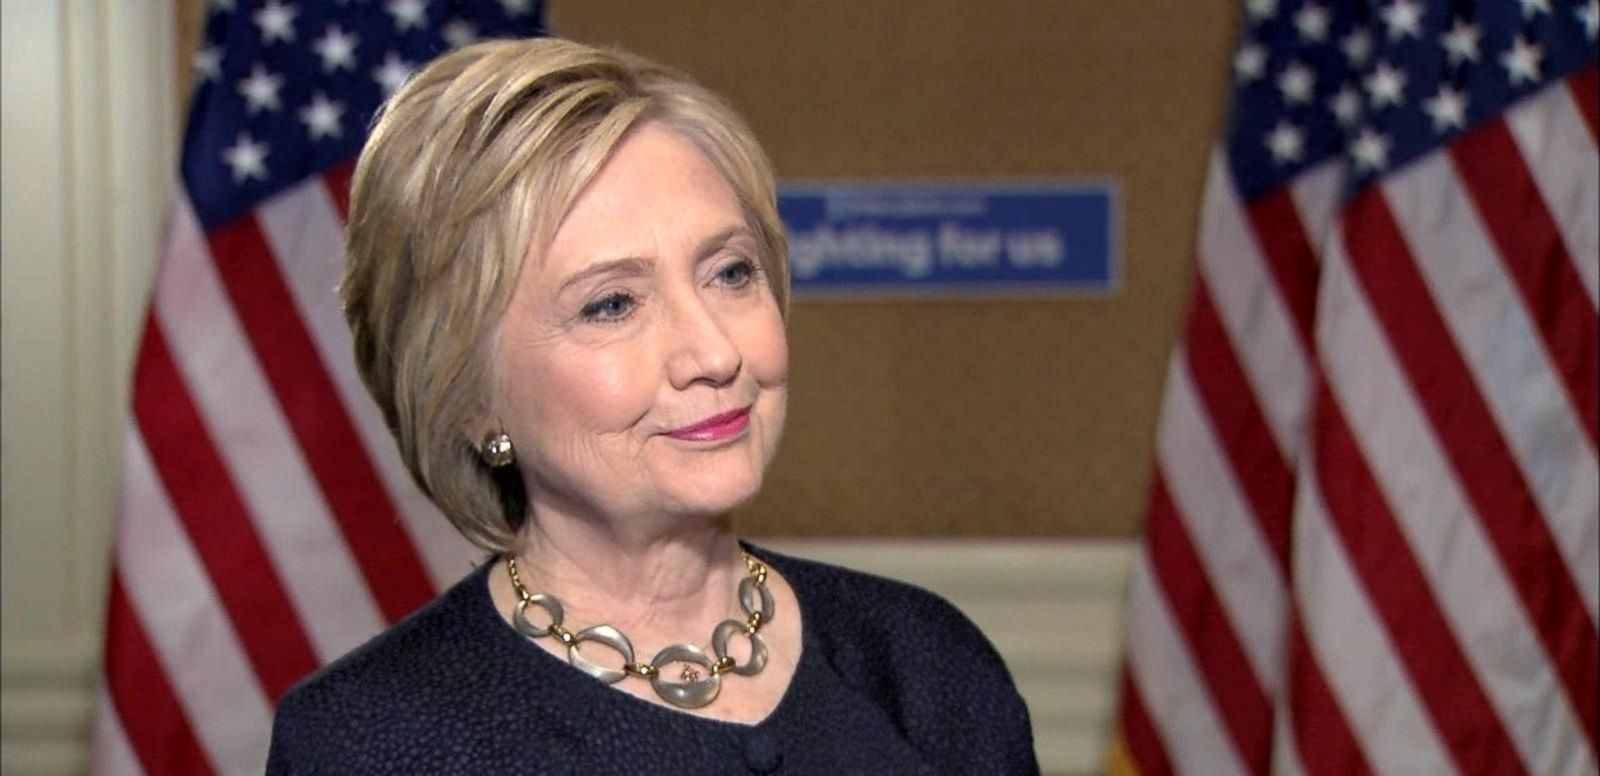 VIDEO: Hillary Clinton Still Trying to Clinch Democratic Presidential Nomination